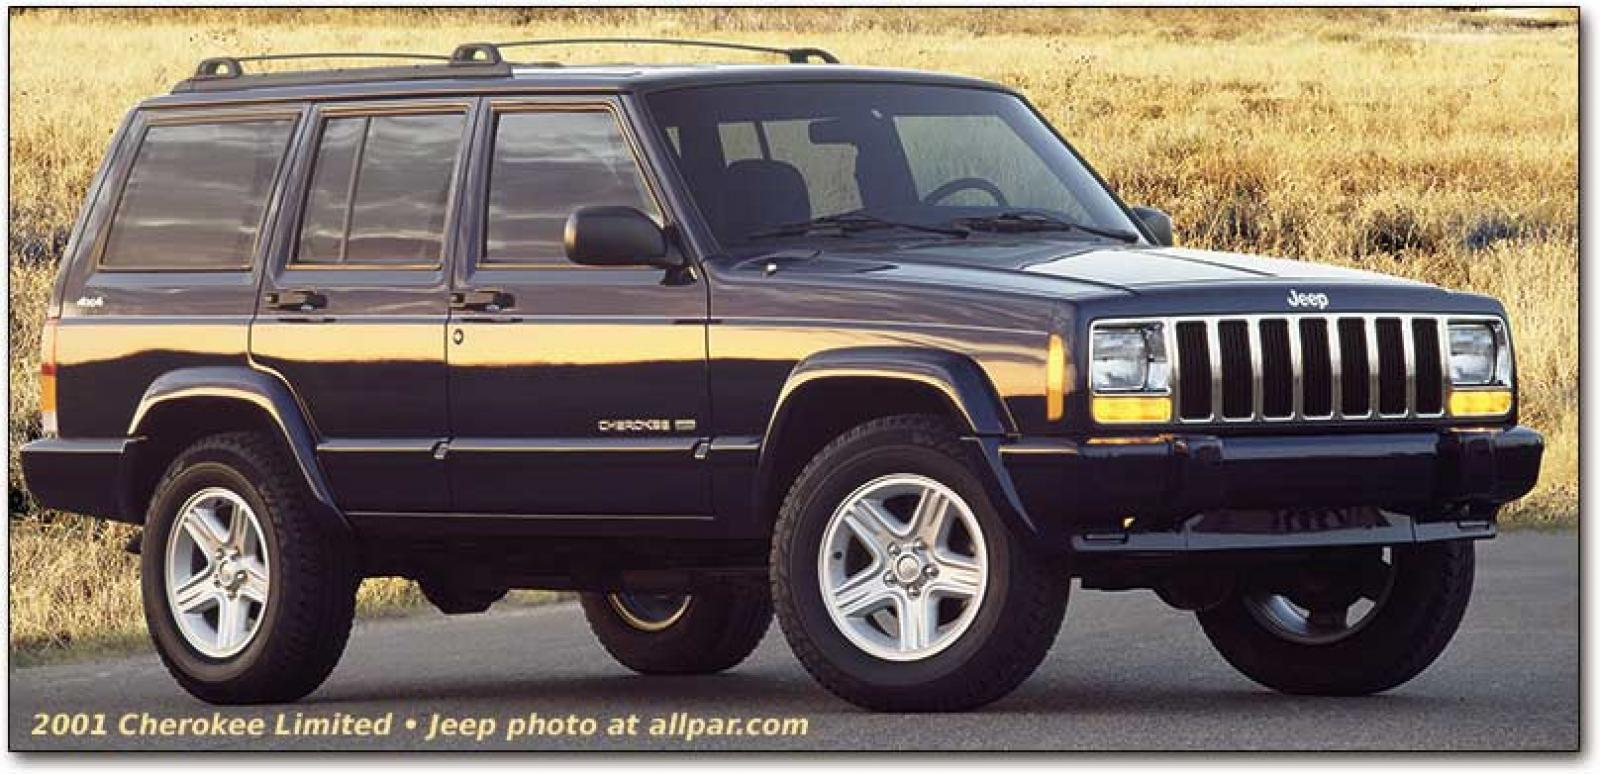 1992 Jeep Cherokee Information And Photos Neo Drive